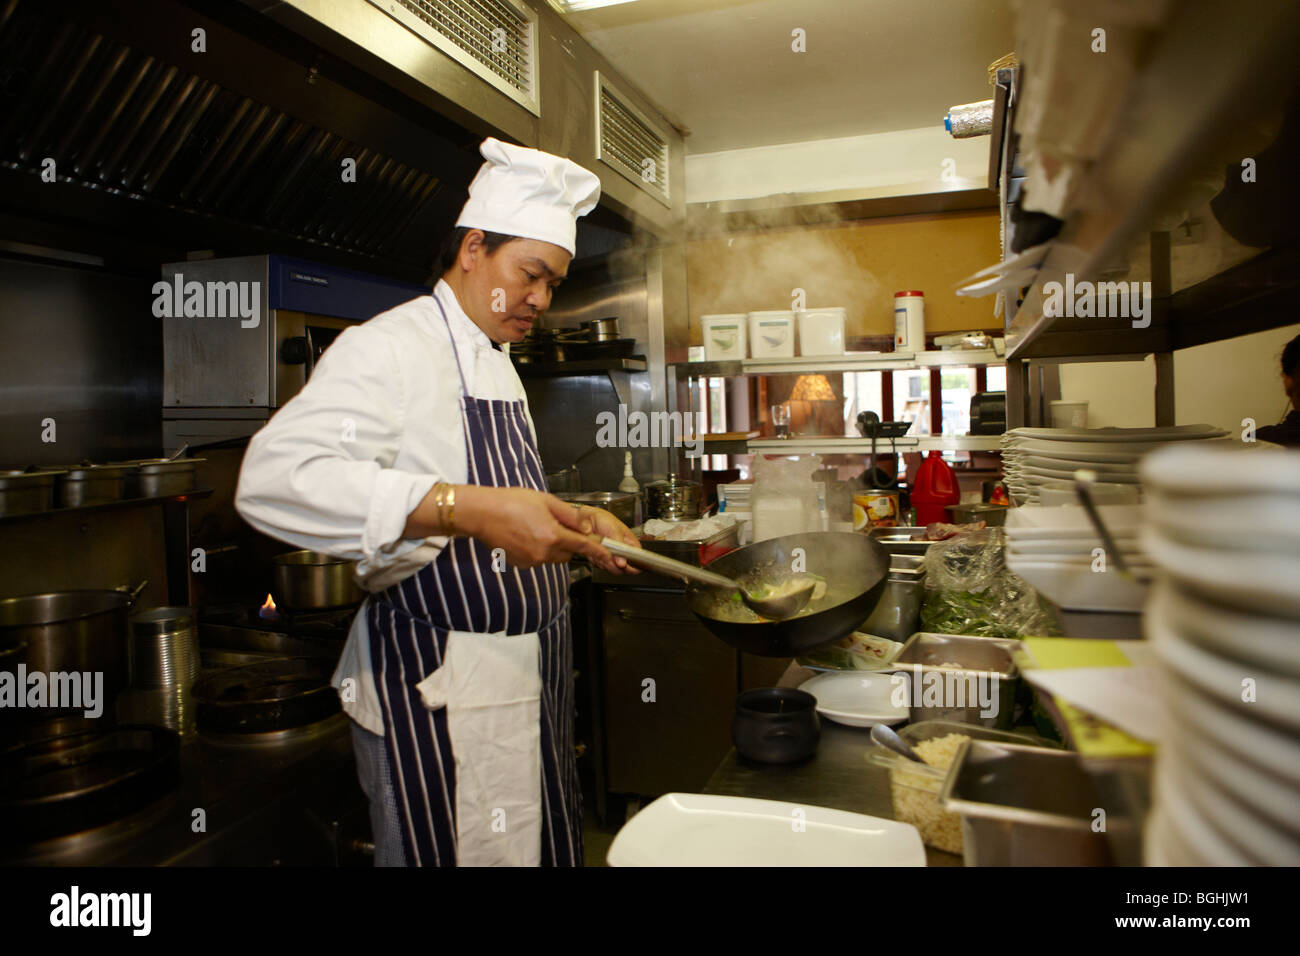 Asian chef cooking in restaurant kitchen stock photo for Kitchen 8 restaurant